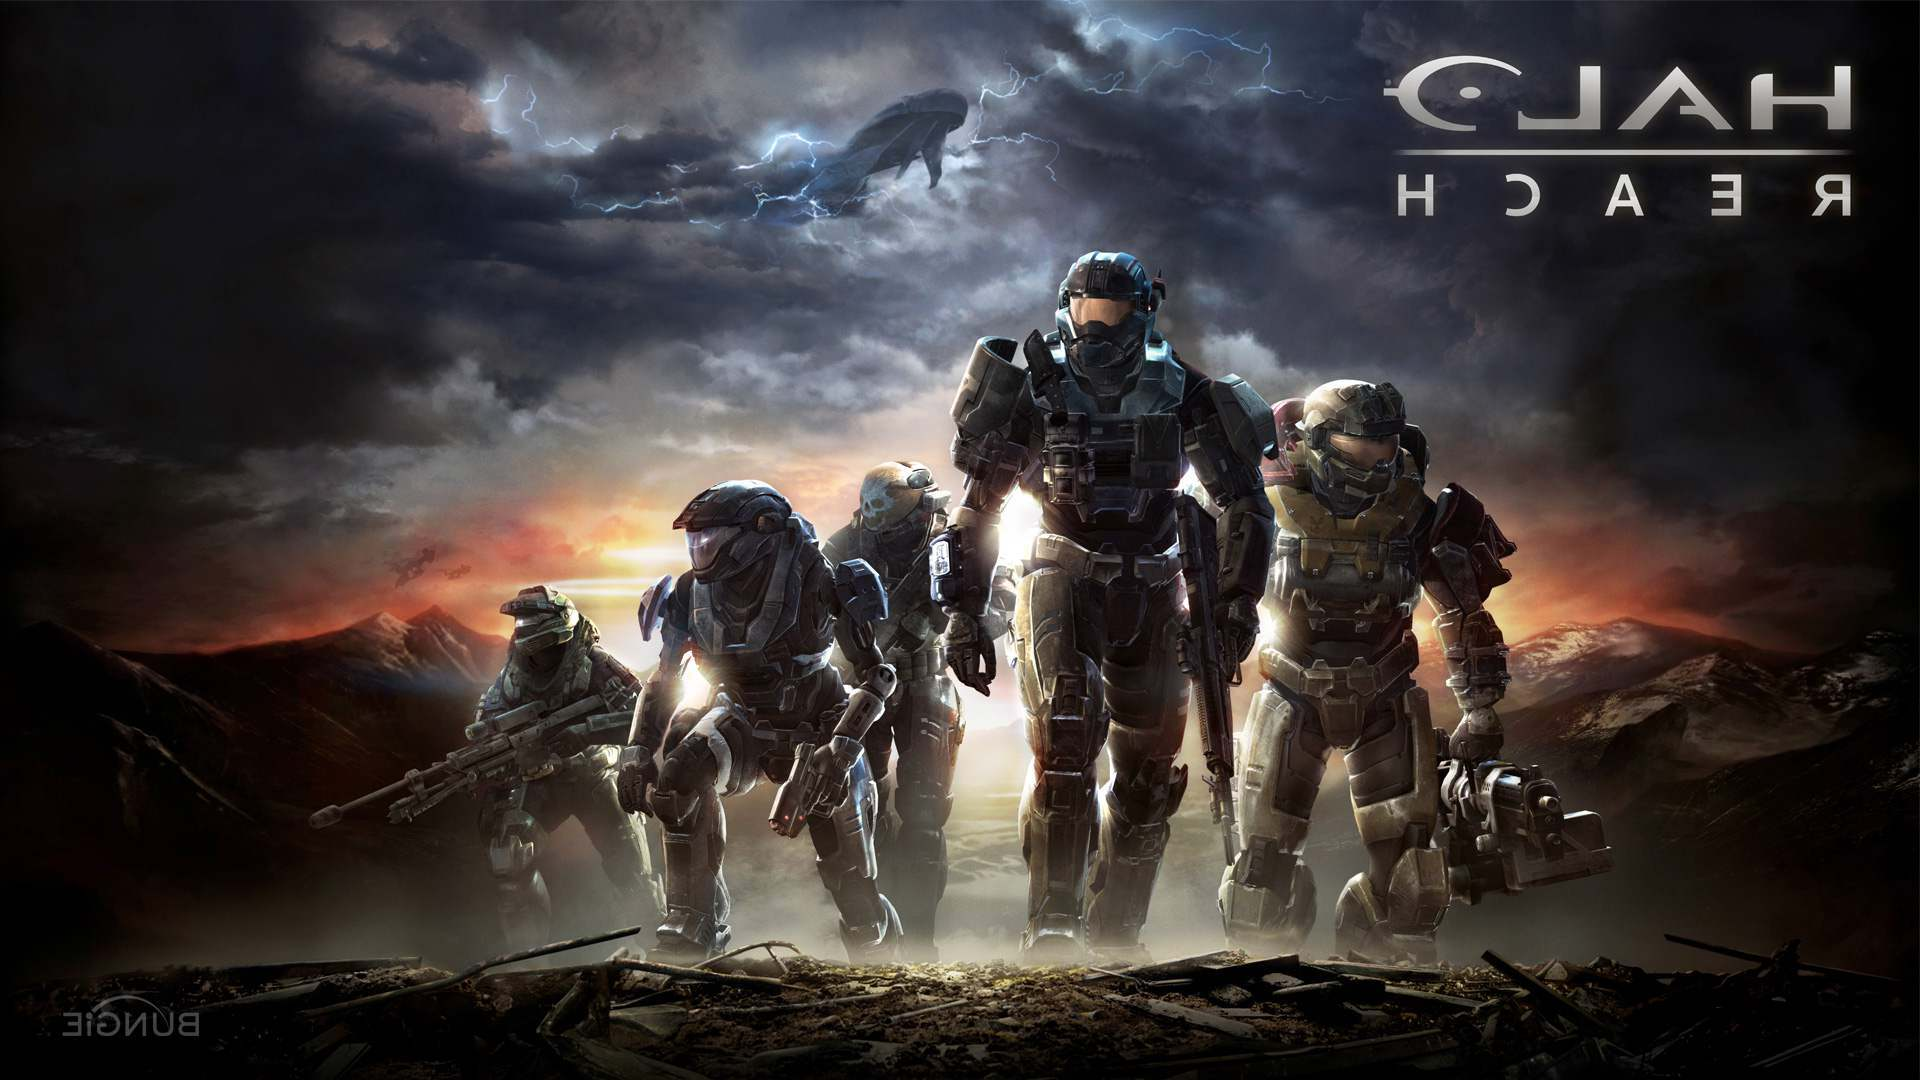 Halo Reach Wallpaper Desktop Kolpaper Awesome Free Hd Wallpapers